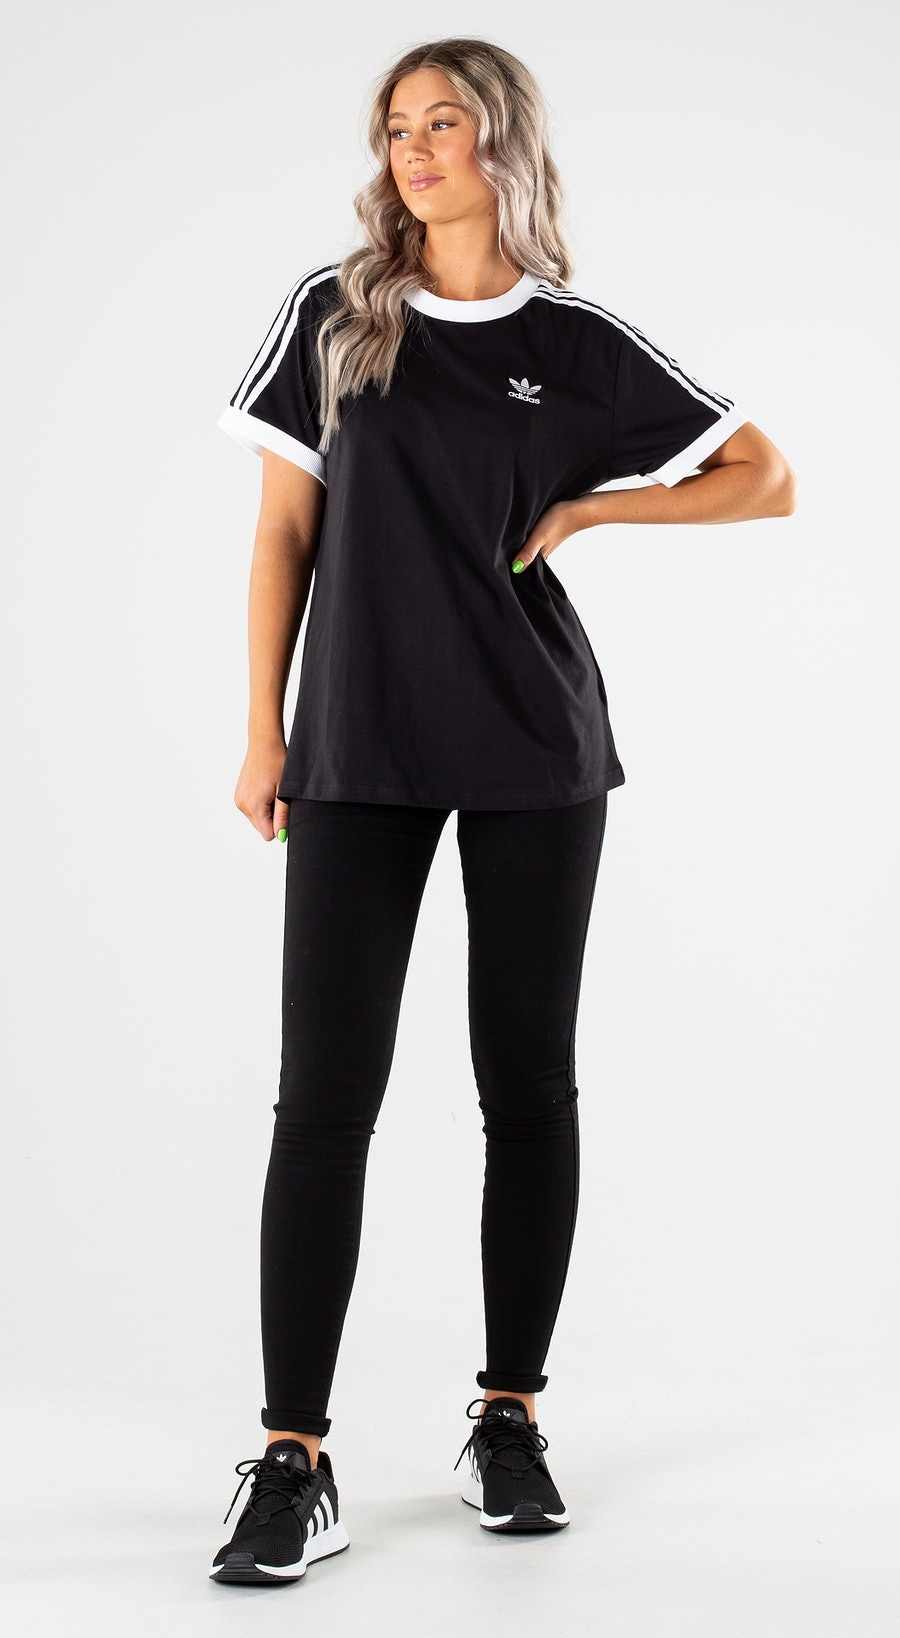 Adidas Originals 3 Stripes Black Outfit Multi